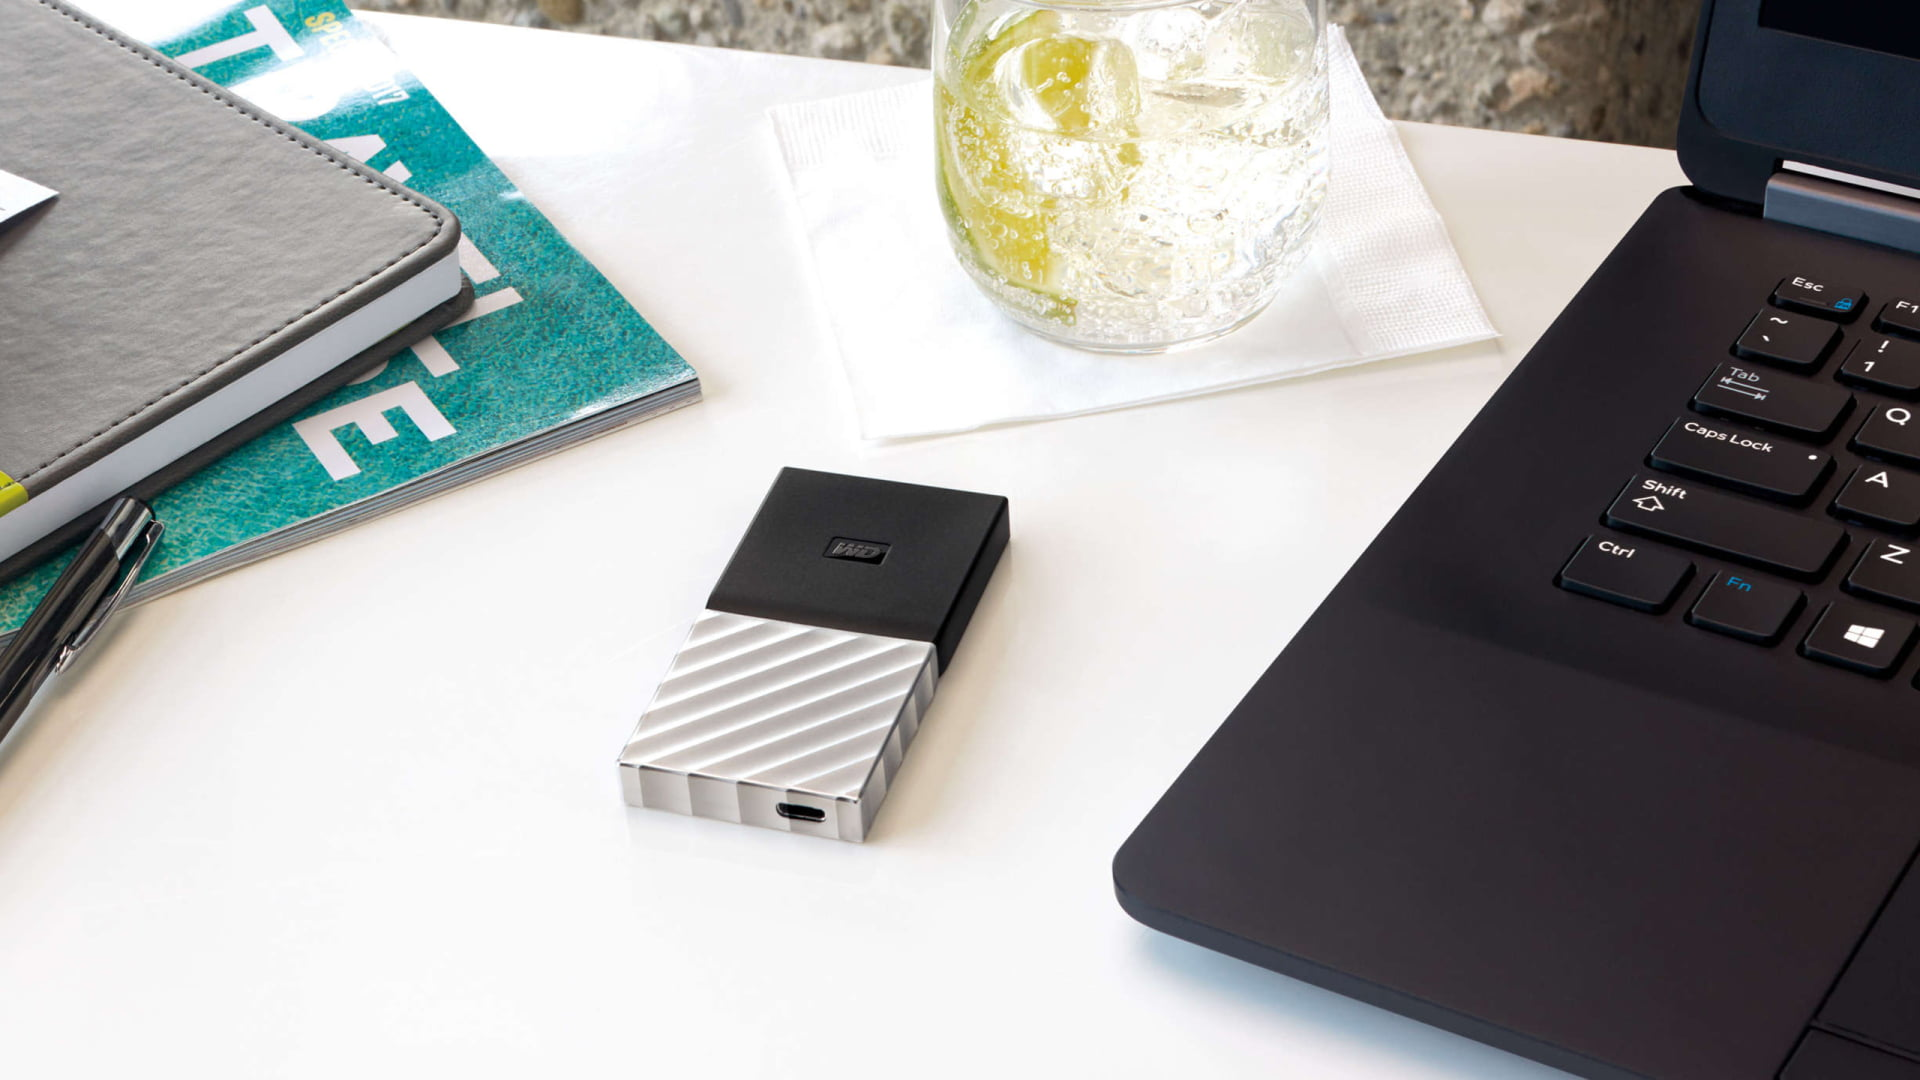 Western Digital Unveils My Passport SSD, Its First Portable WD Solid State Drive [Video]